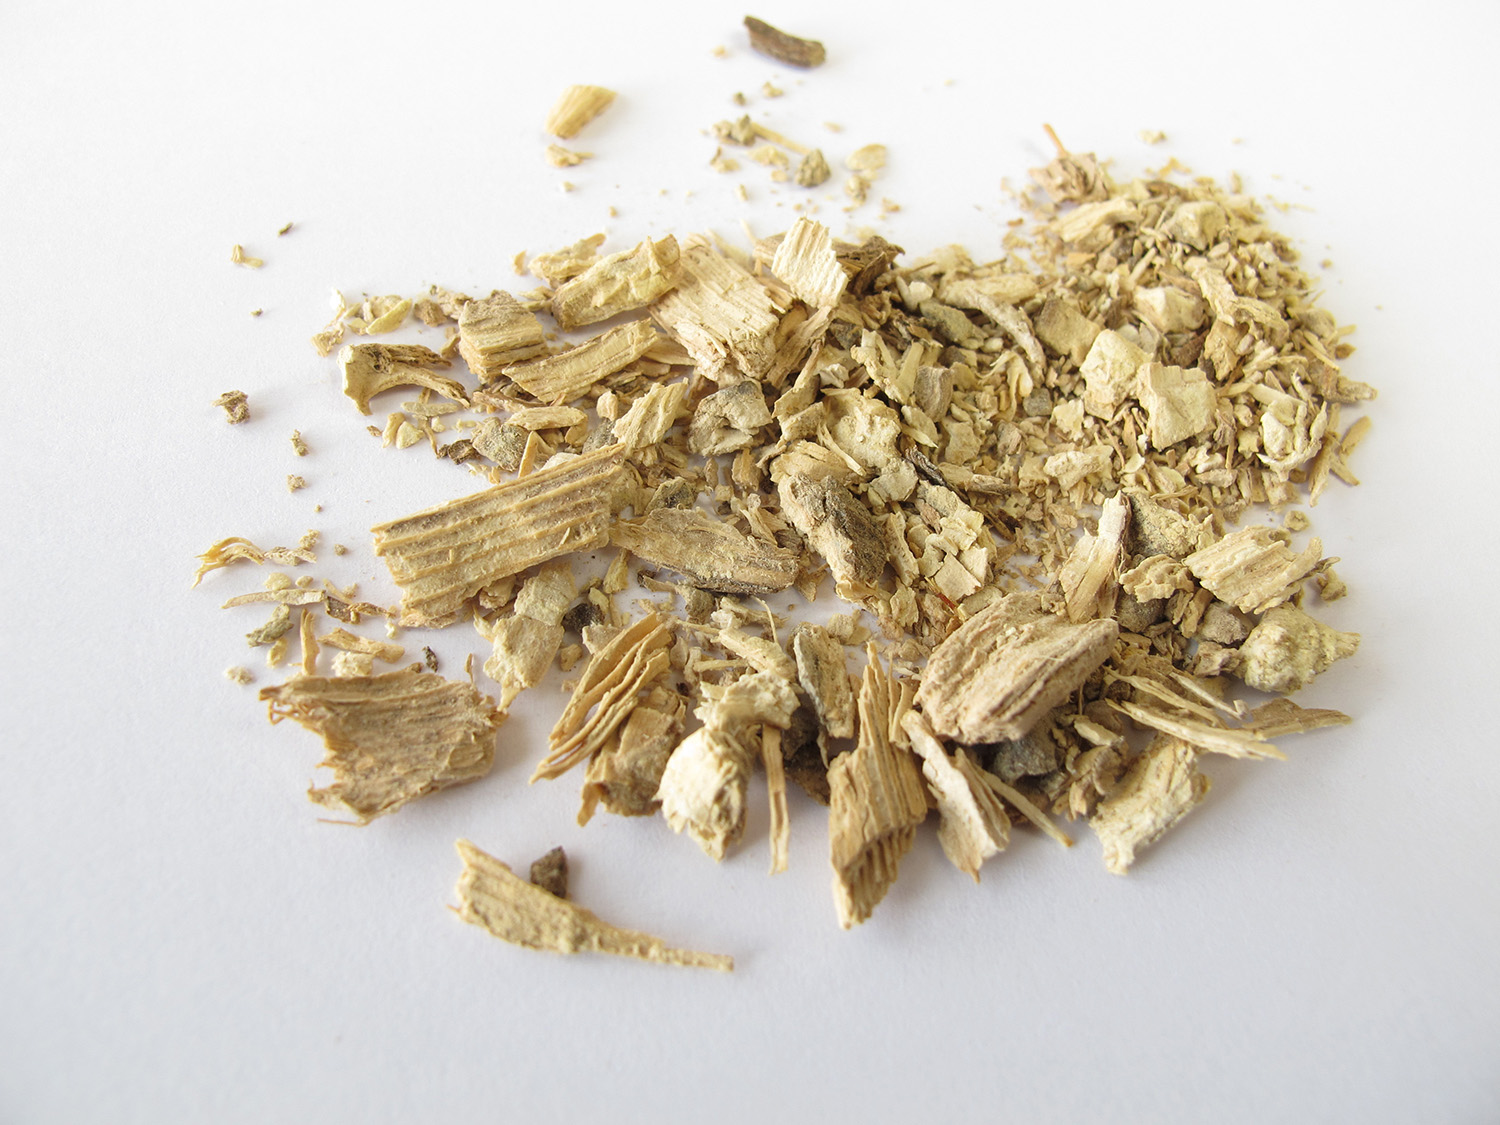 Kava Root Herbal Medicine